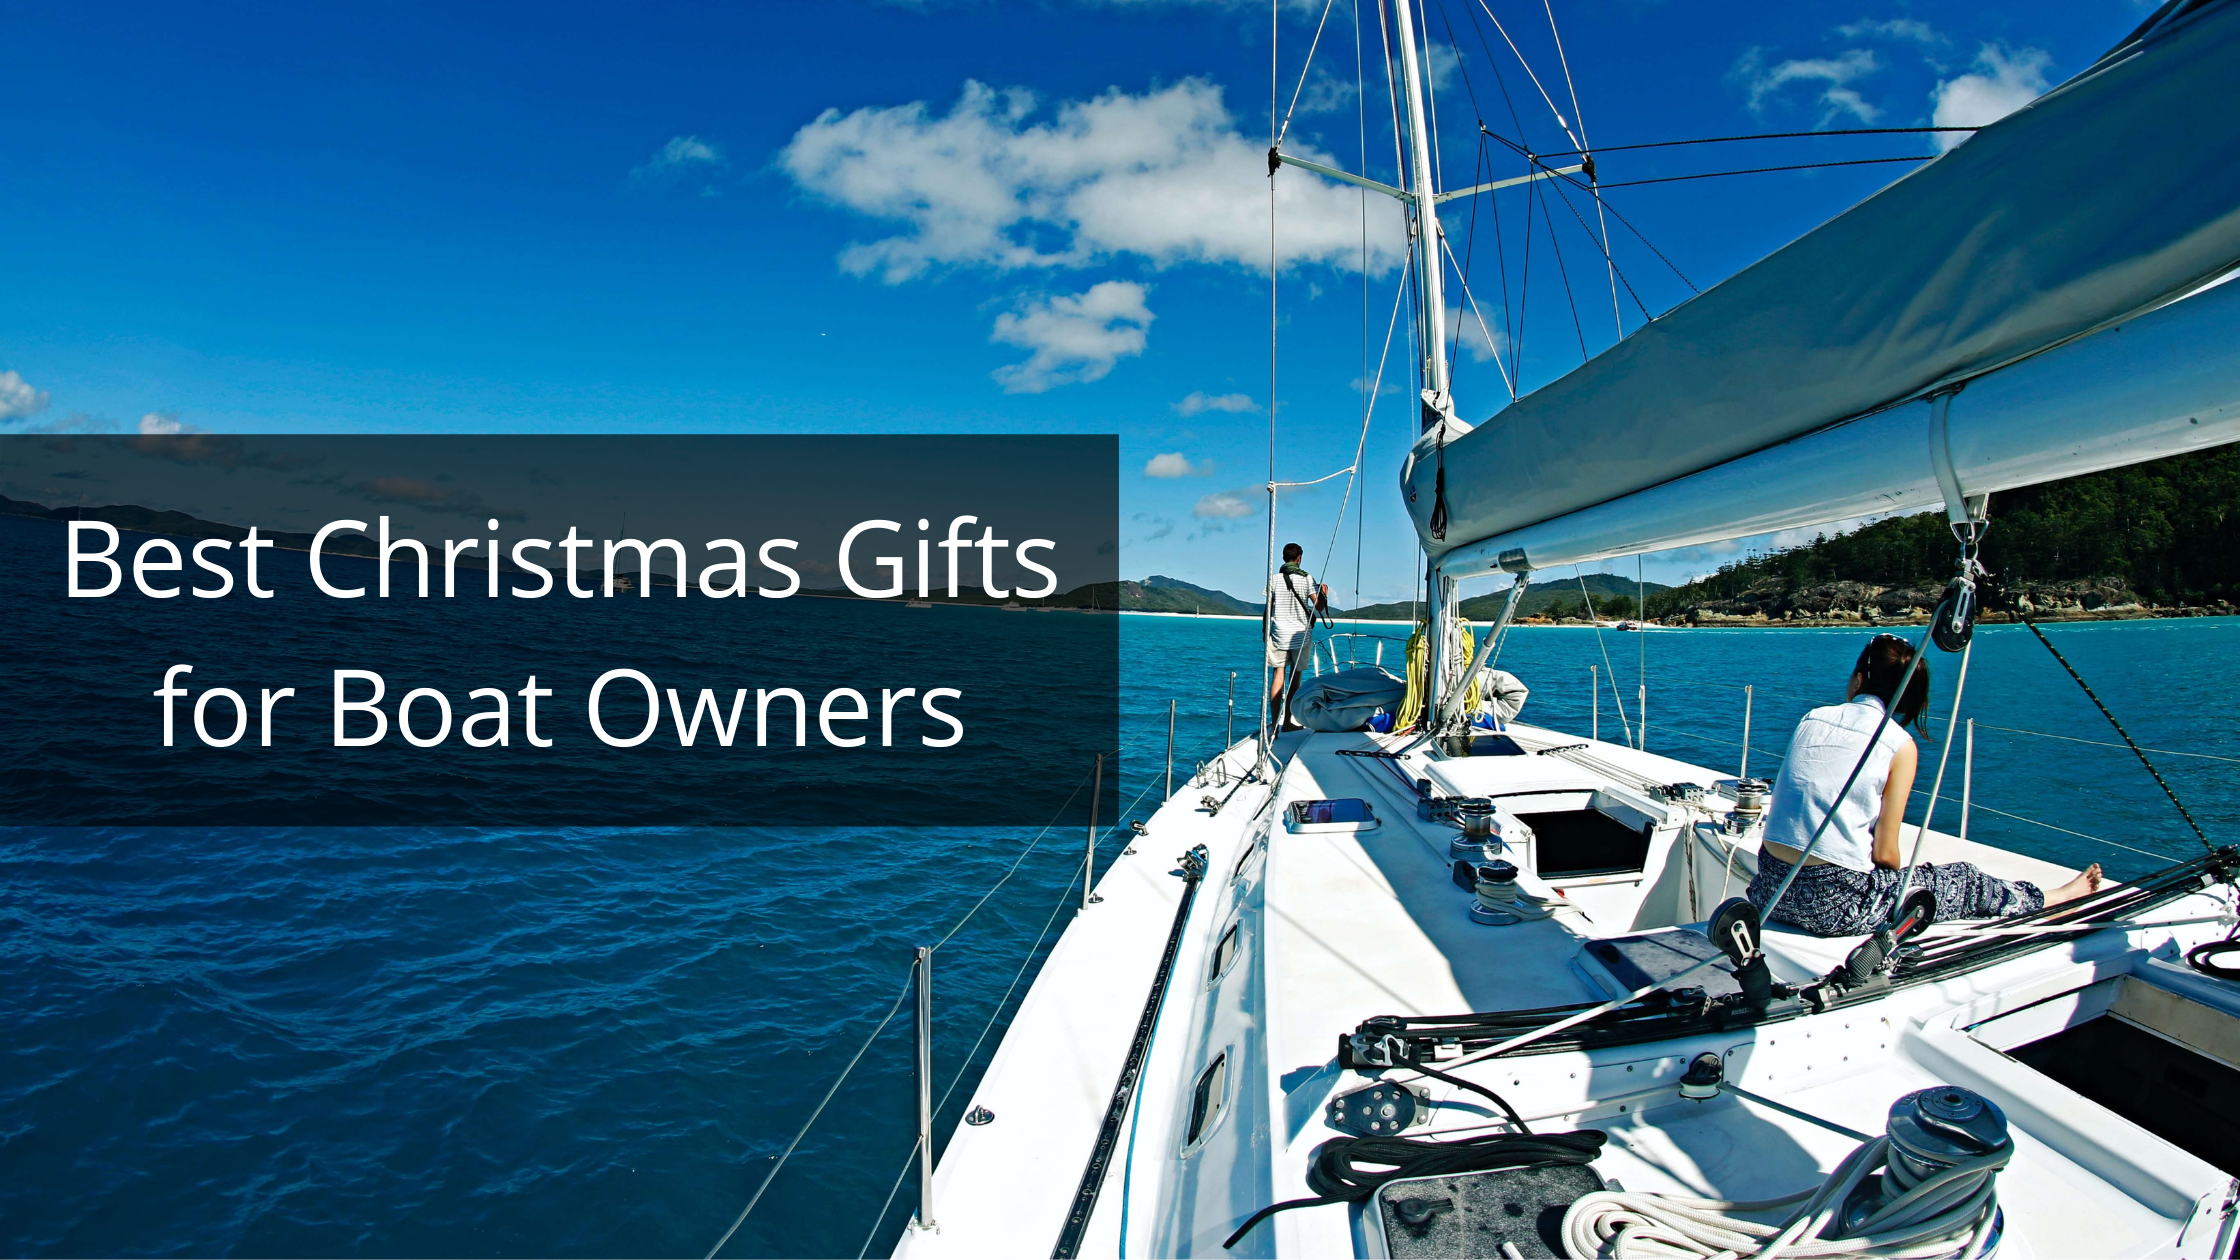 Best Christmas Gifts for Boat Owners-banner